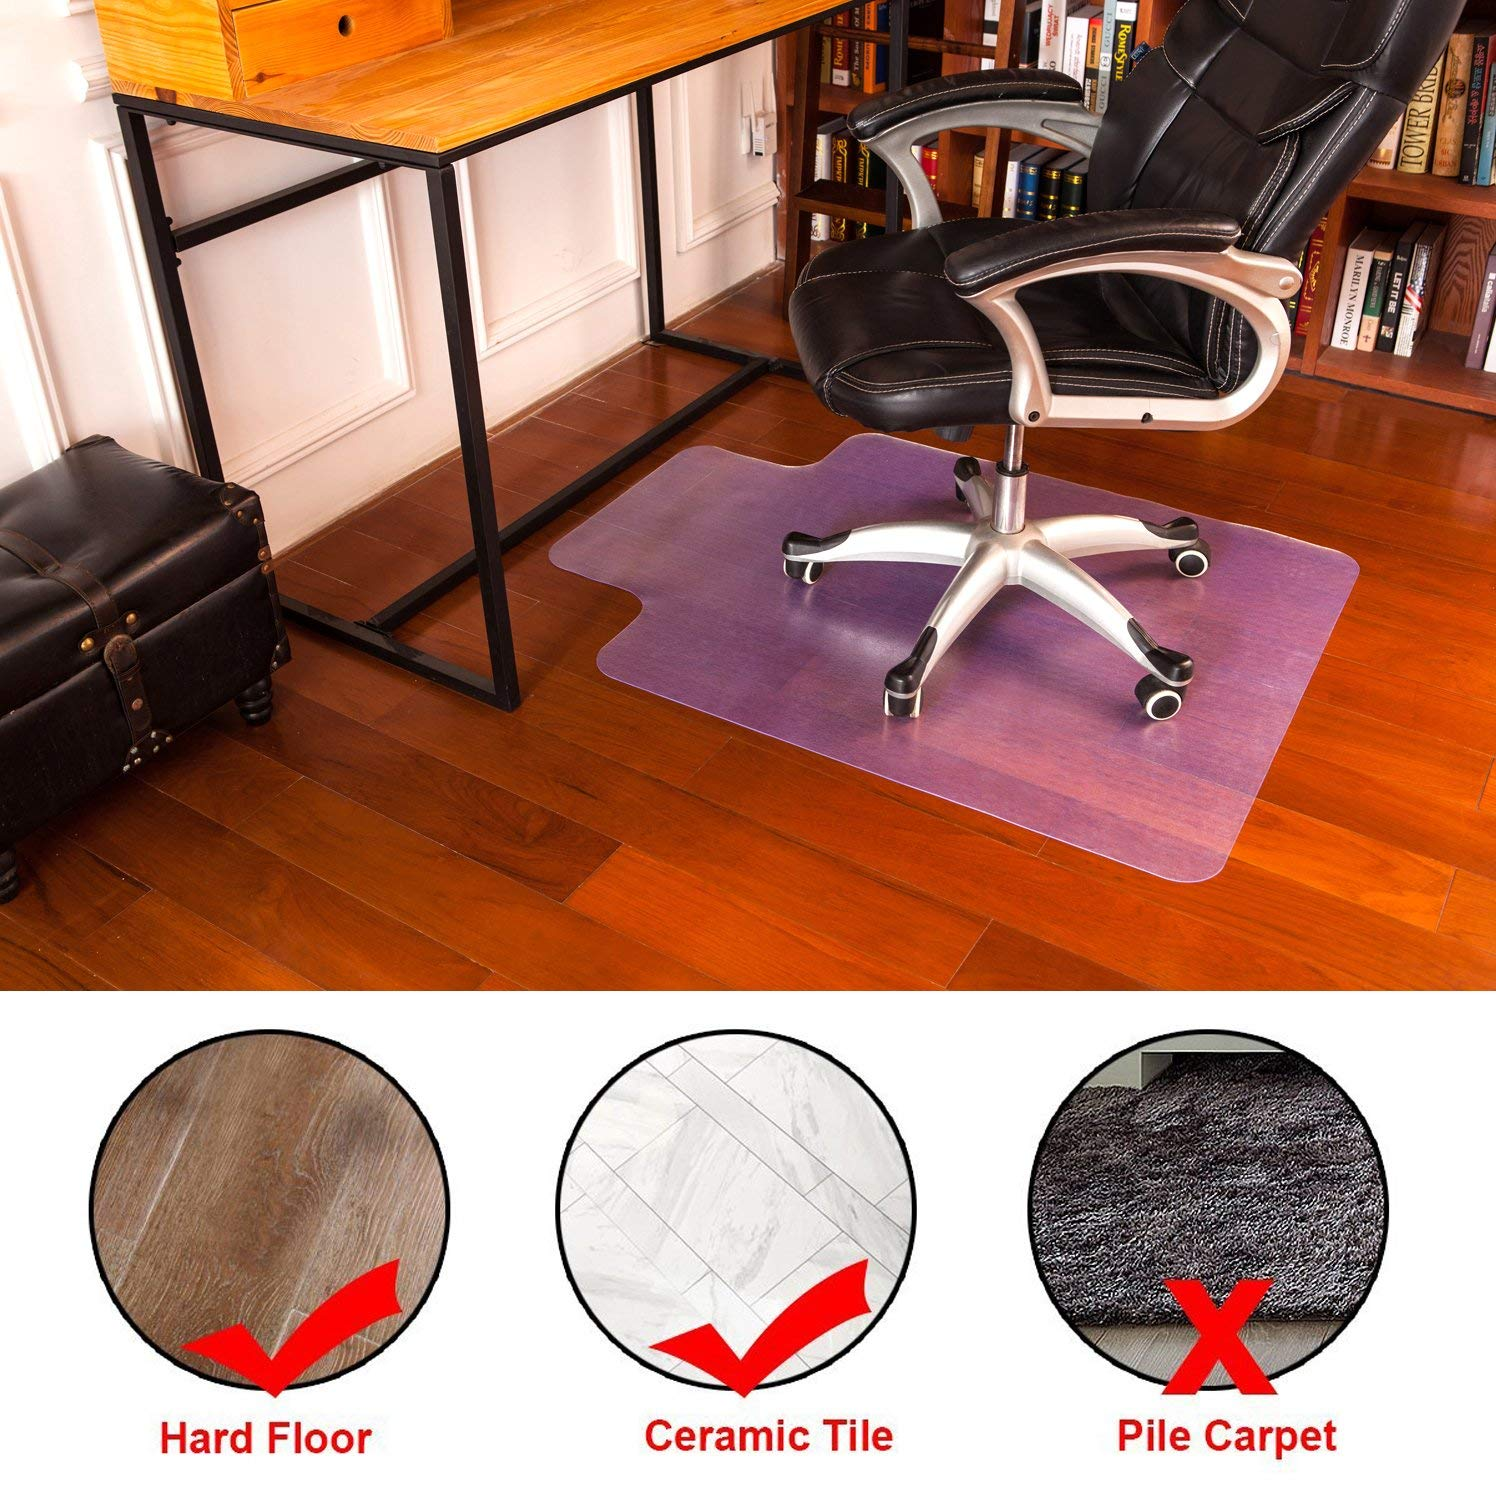 Chair Mat Home Office Floor Protectors For Gaming Computer Chair Anti Slip Desk Floor Mats 36 X 48 Mysuntown Mysuntown Office Chair Mat For Hardwood Floor Carpet Chair Mats